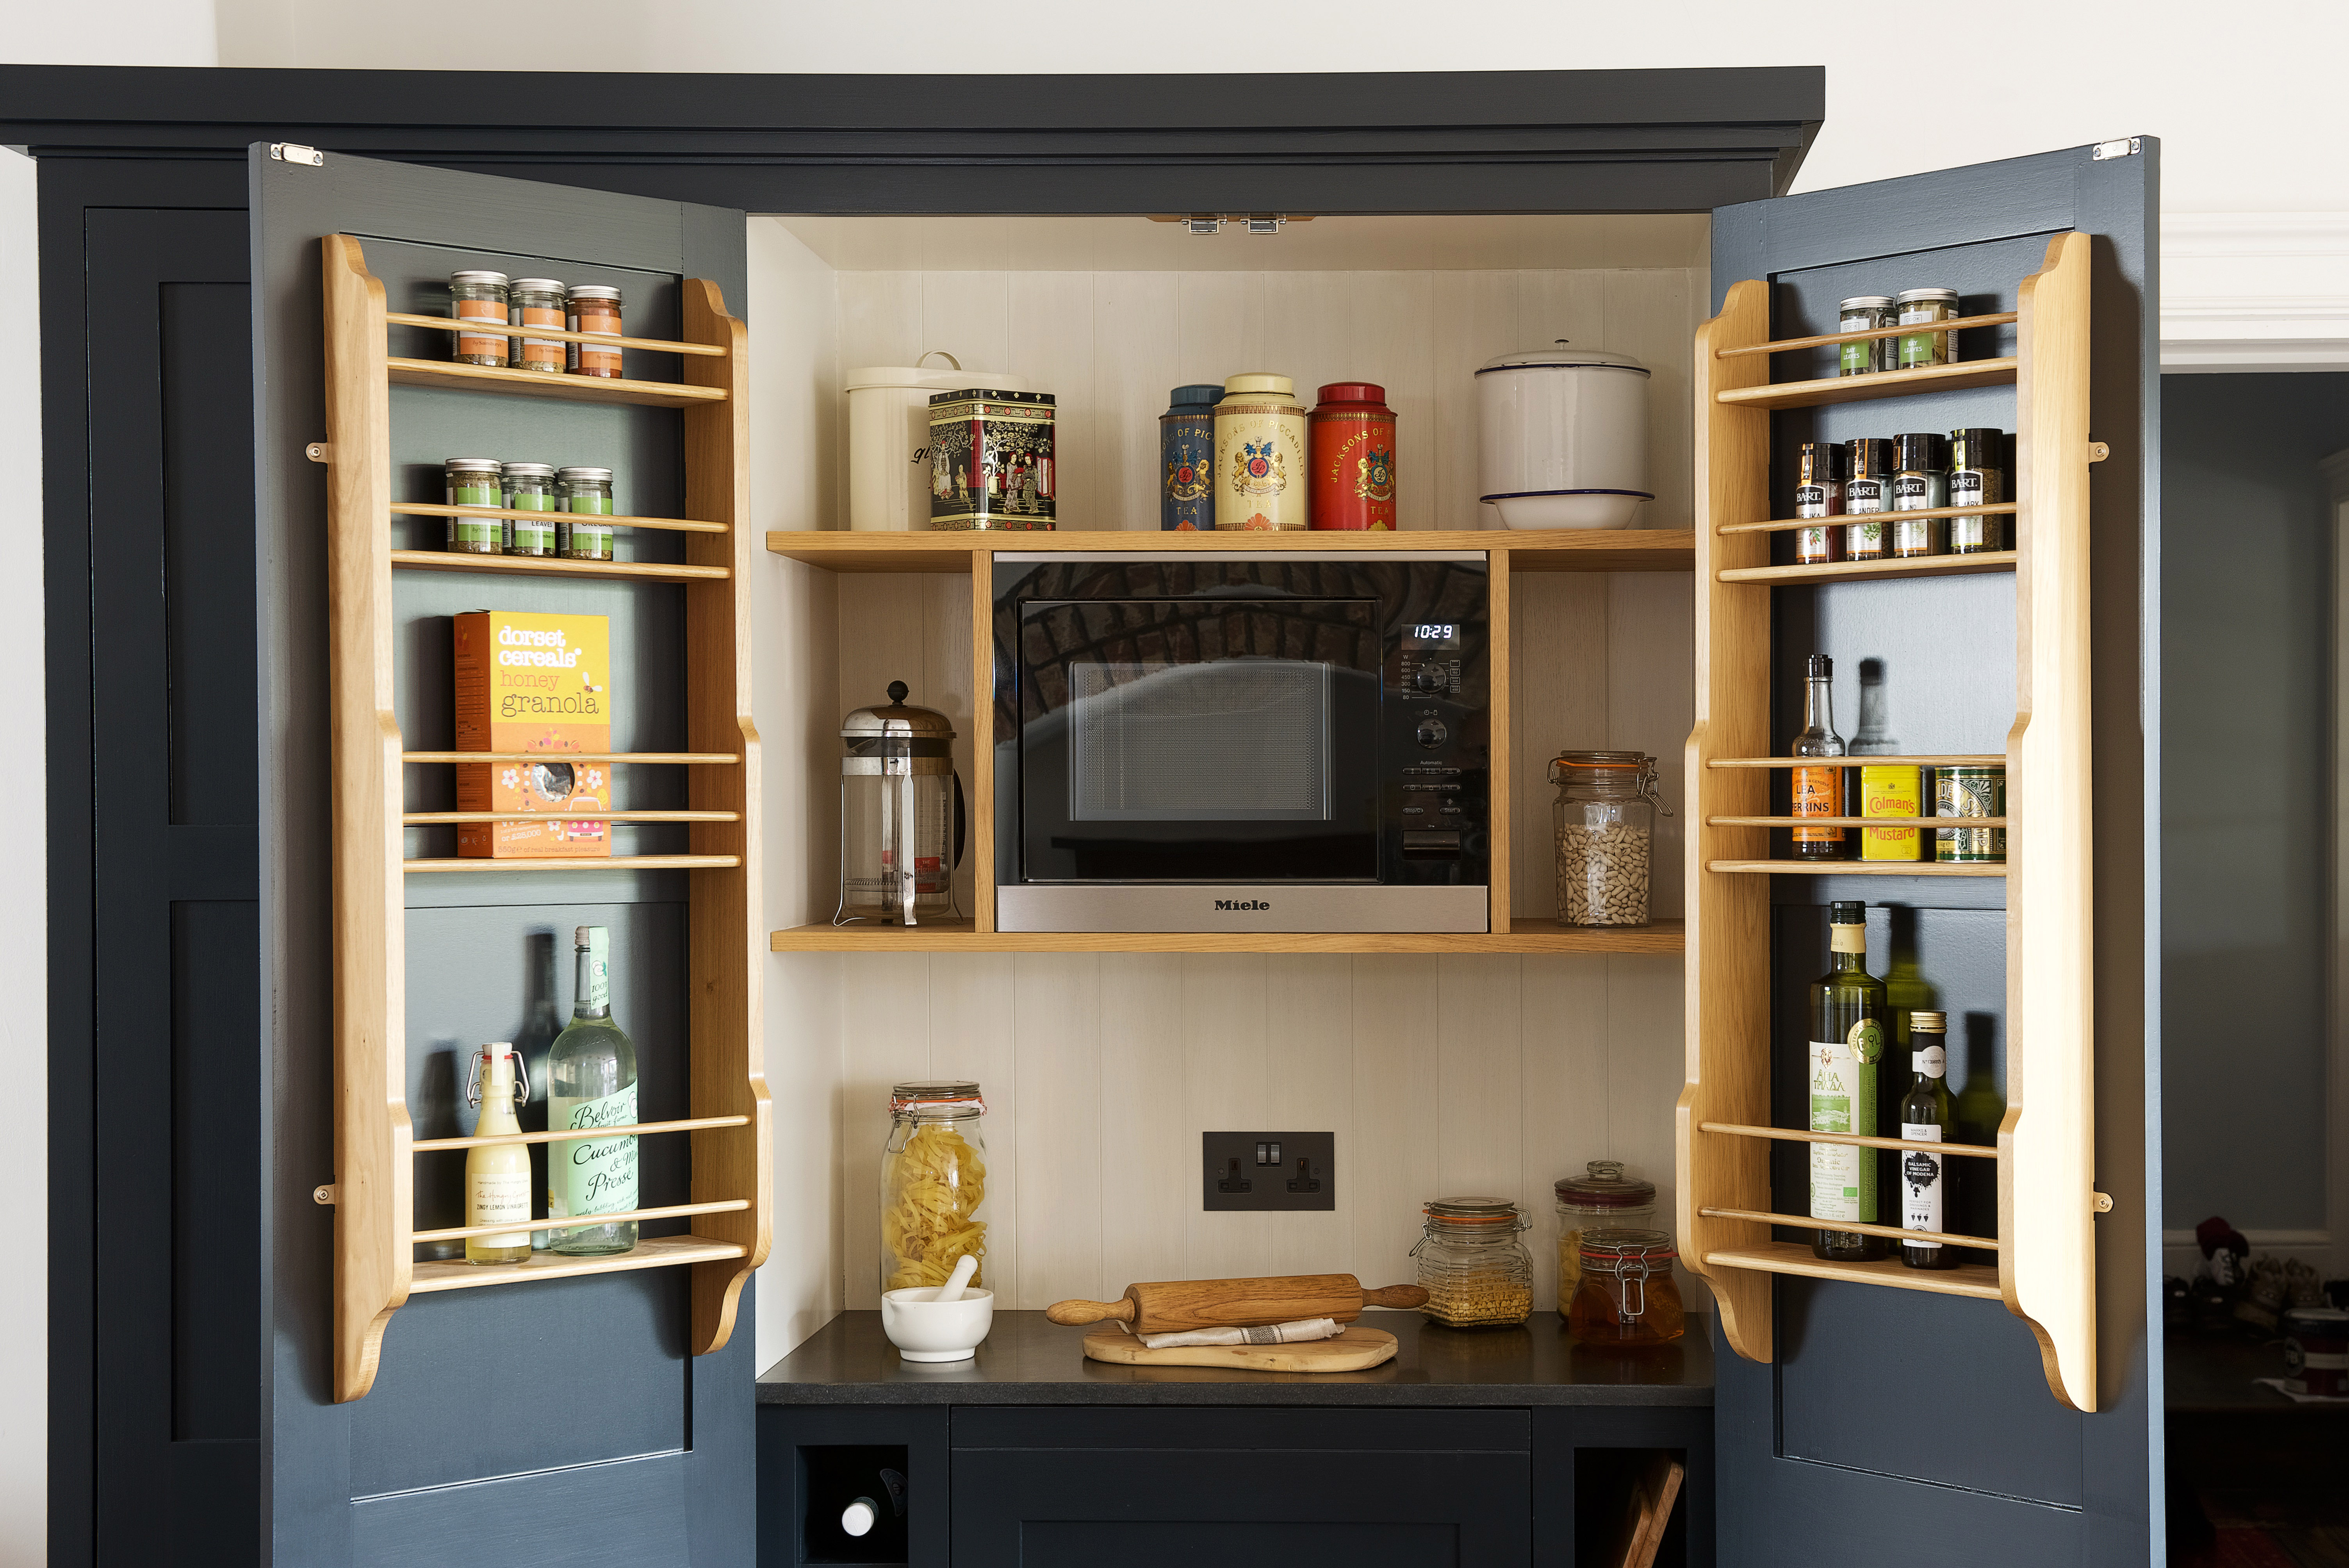 Bespoke handmade shaker larder hand painted in Farrow & Ball Railings with spice racks and built in microwave and cooler.